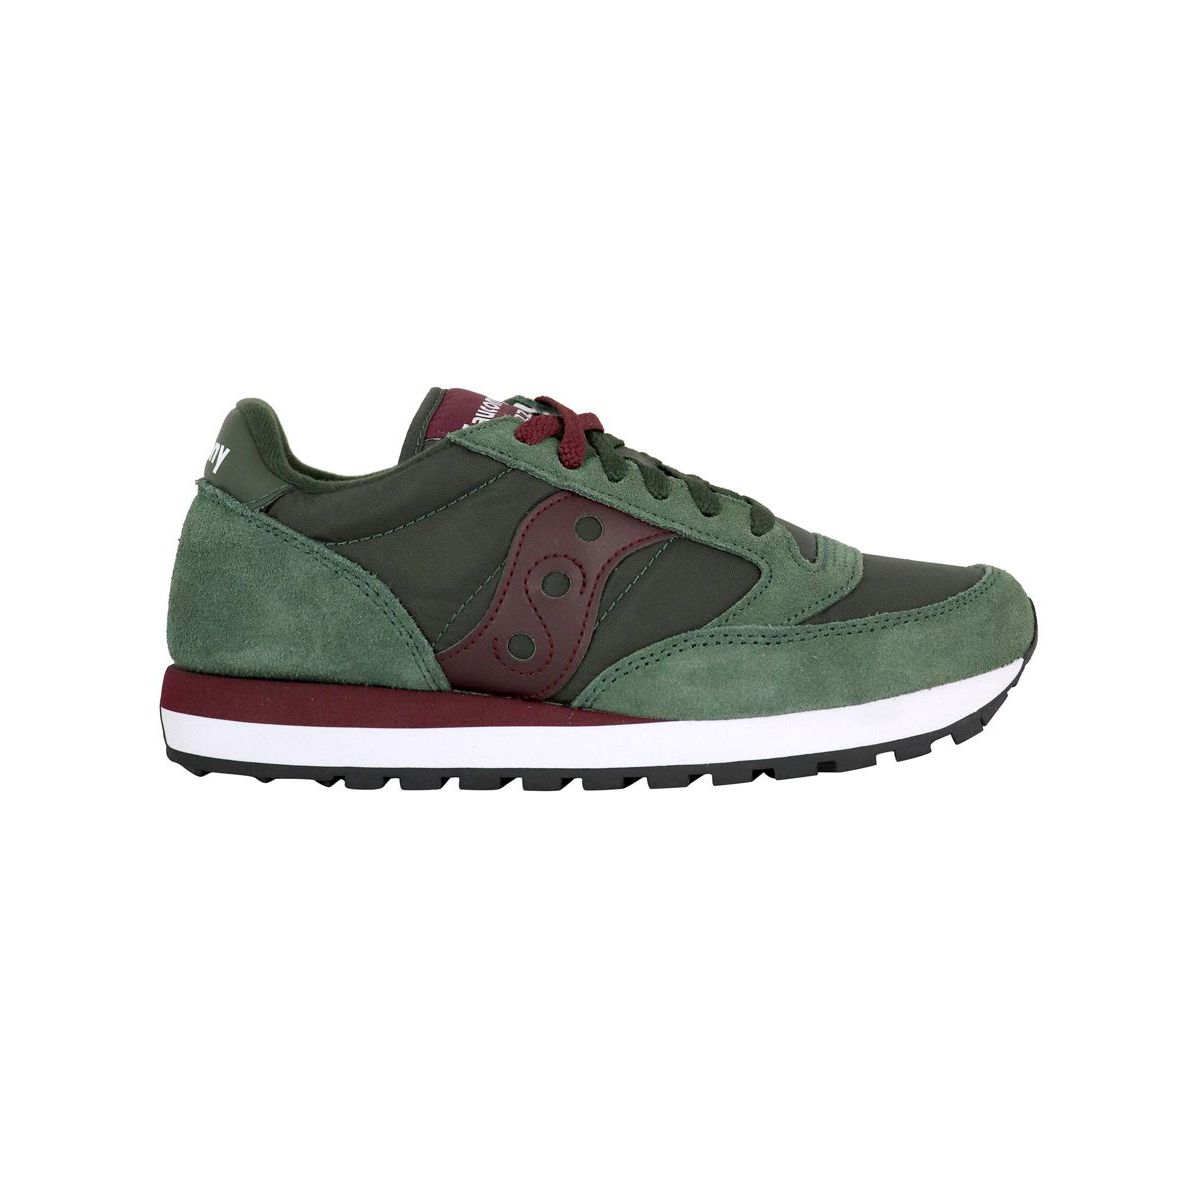 Sneakers JAZZ ORIGINALS 2044 Green Saucony